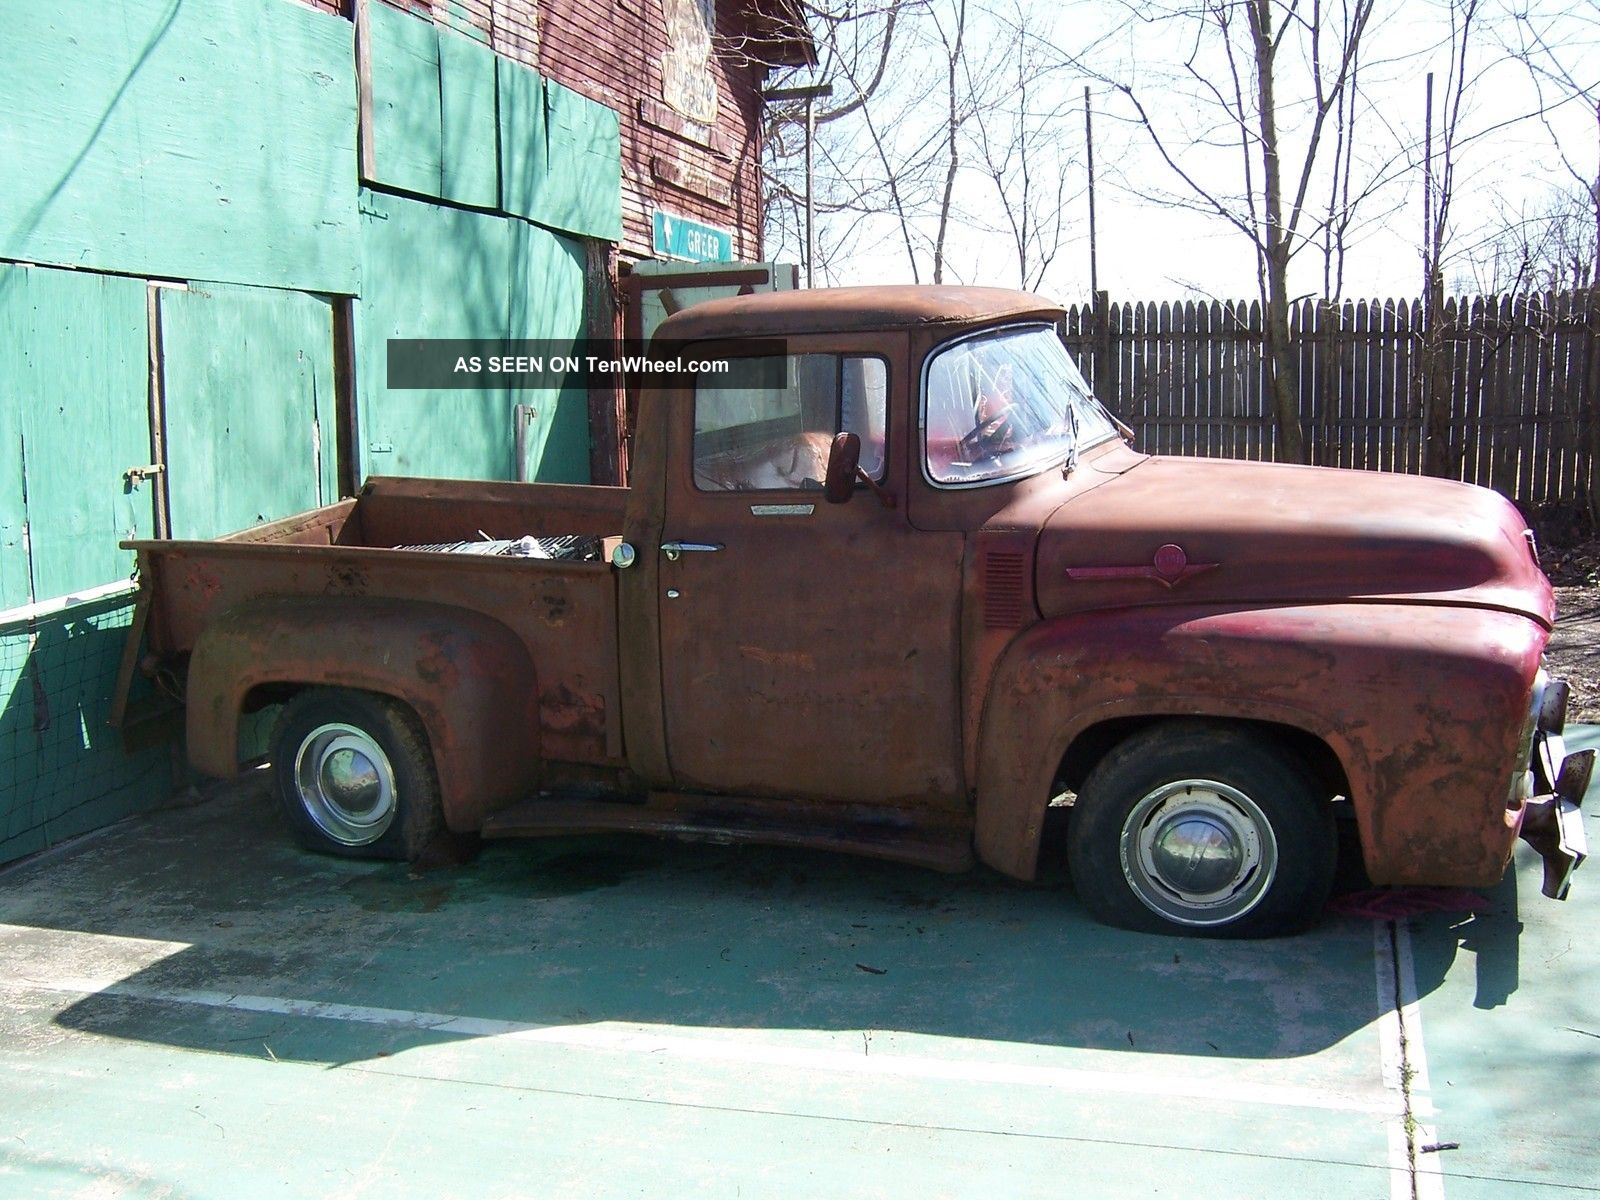 A Fe Ac E Cebb Ffeb De F D furthermore Gmc Series Truck additionally Datsun Pickup Truck likewise Ford F Short Bed Side Step Lgw additionally Maxresdefault. on 1956 dodge pickup truck